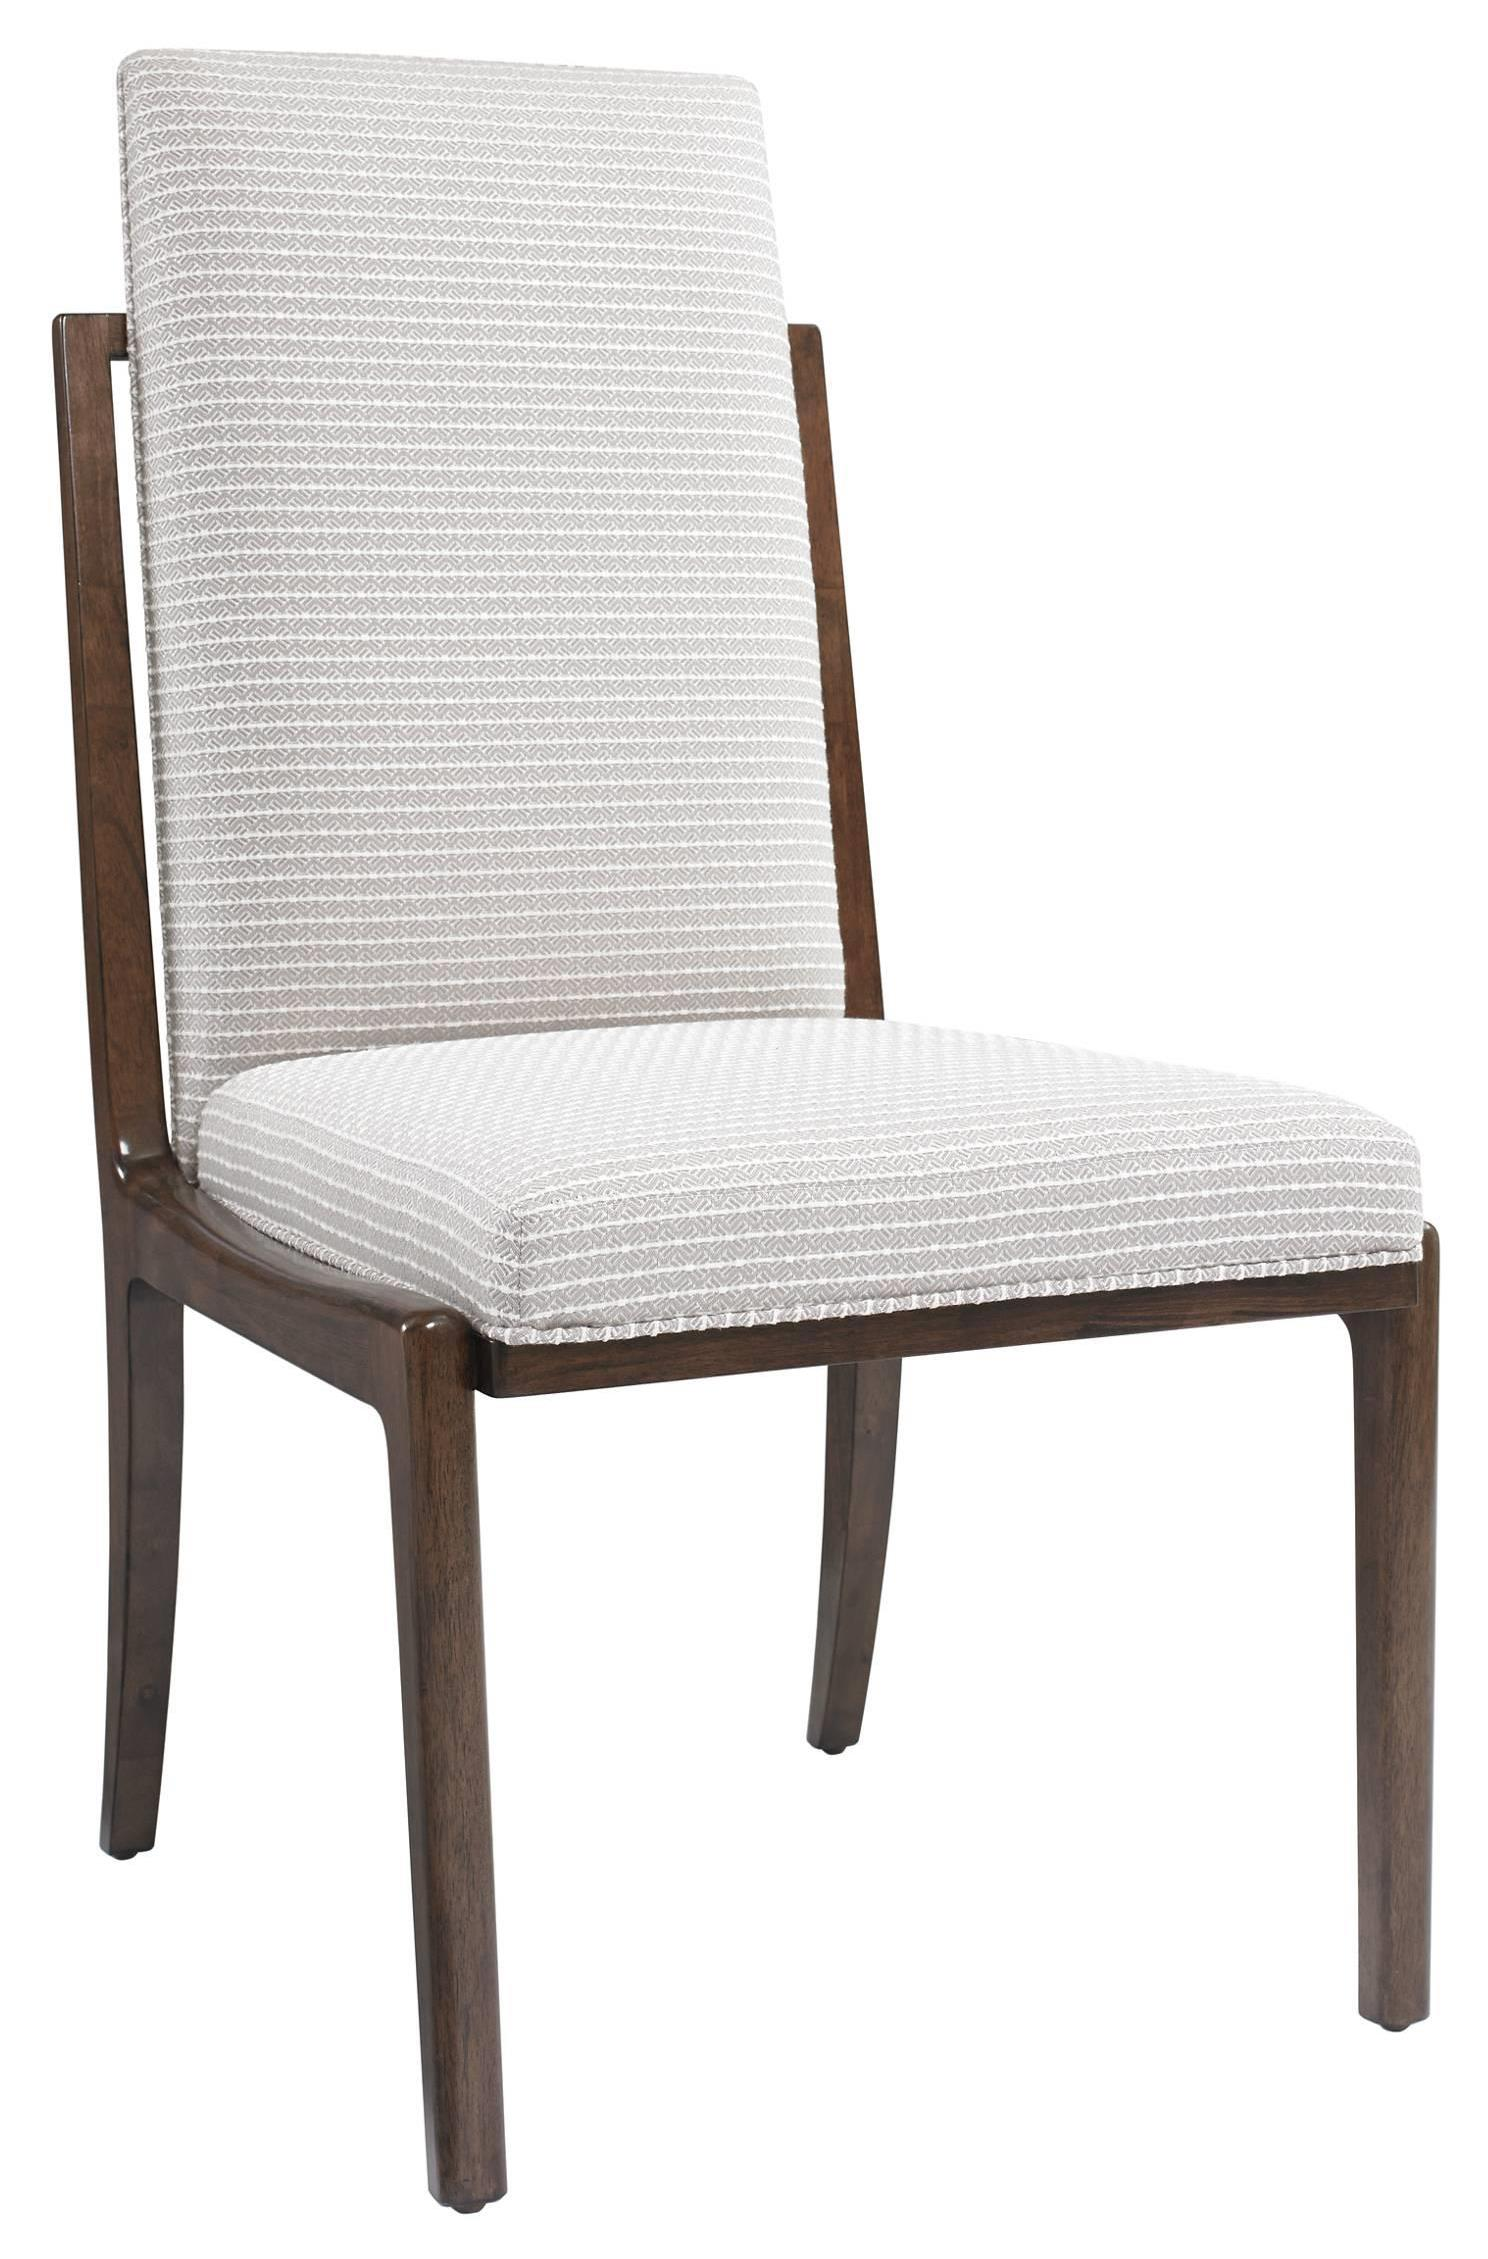 Stanley Furniture Fairlane Upholstered Host Chair - Item Number: 417-11-75